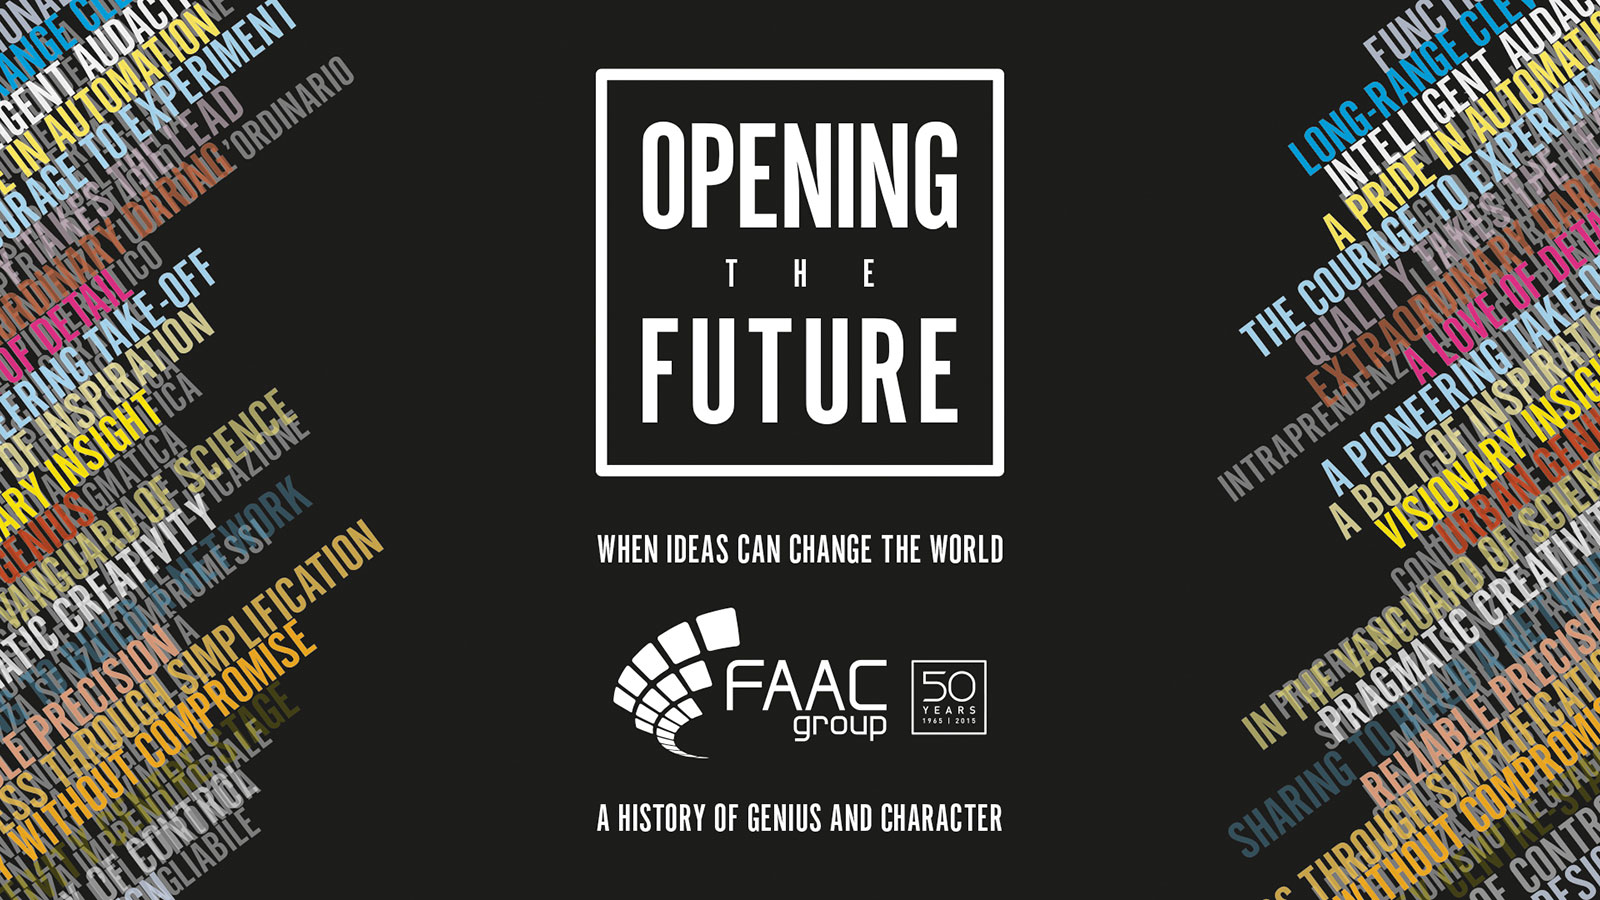 Event Management For Faac S 50 Anniversary